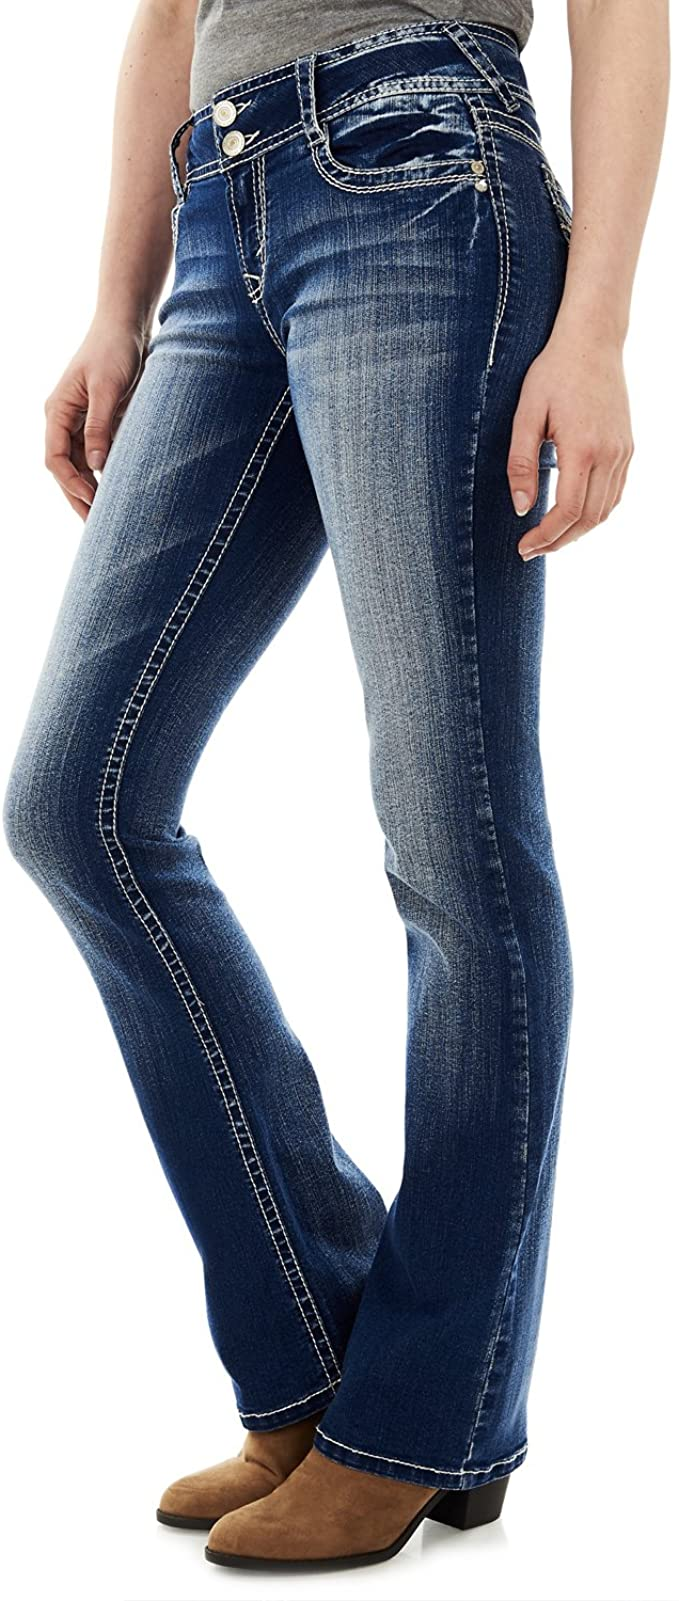 how to style bootcut jeans with trendy new tops fashion colors herstylecode How to Style Bootcut Jeans - Bootcut Jeans Outfit Ideas